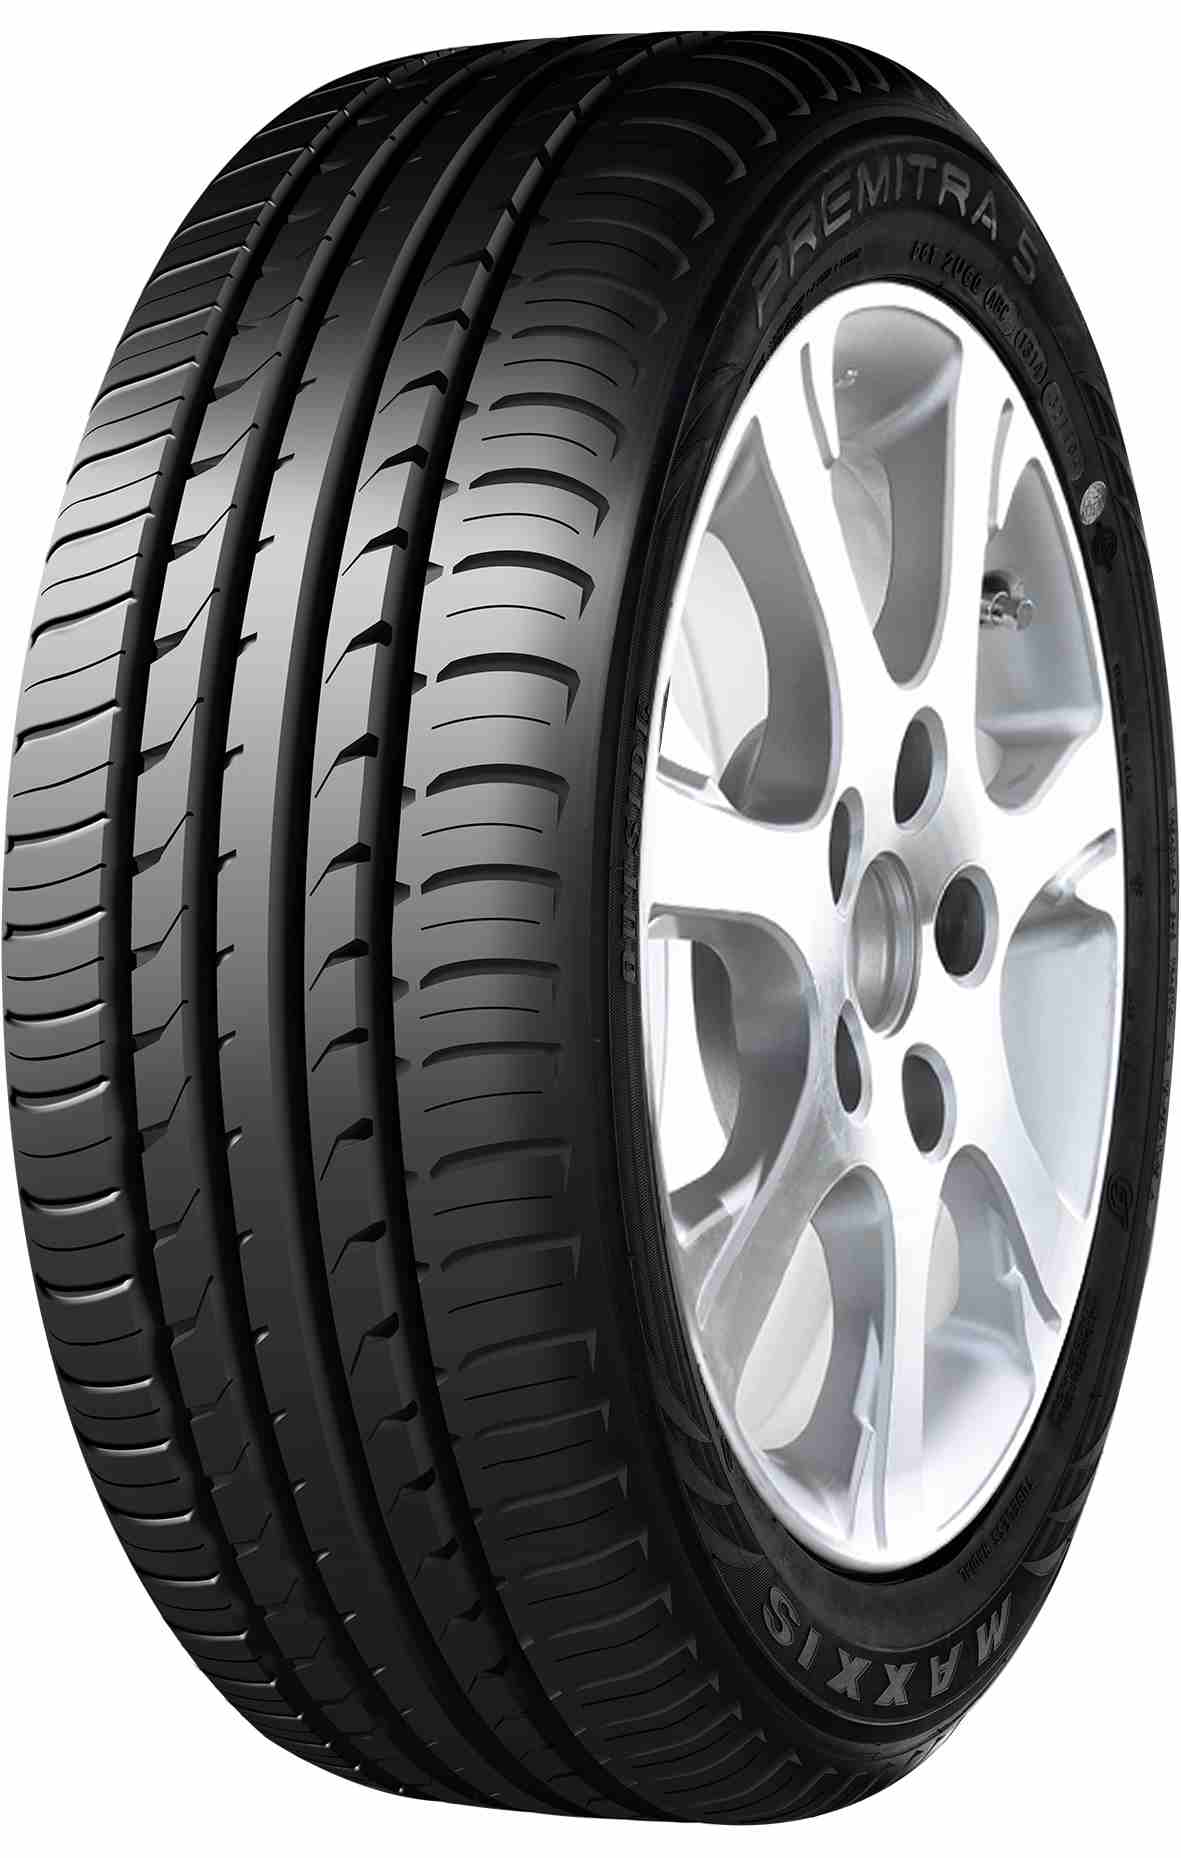 Summer Tyre MAXXIS MAXXIS HP5 Y 235/40R18 95 W